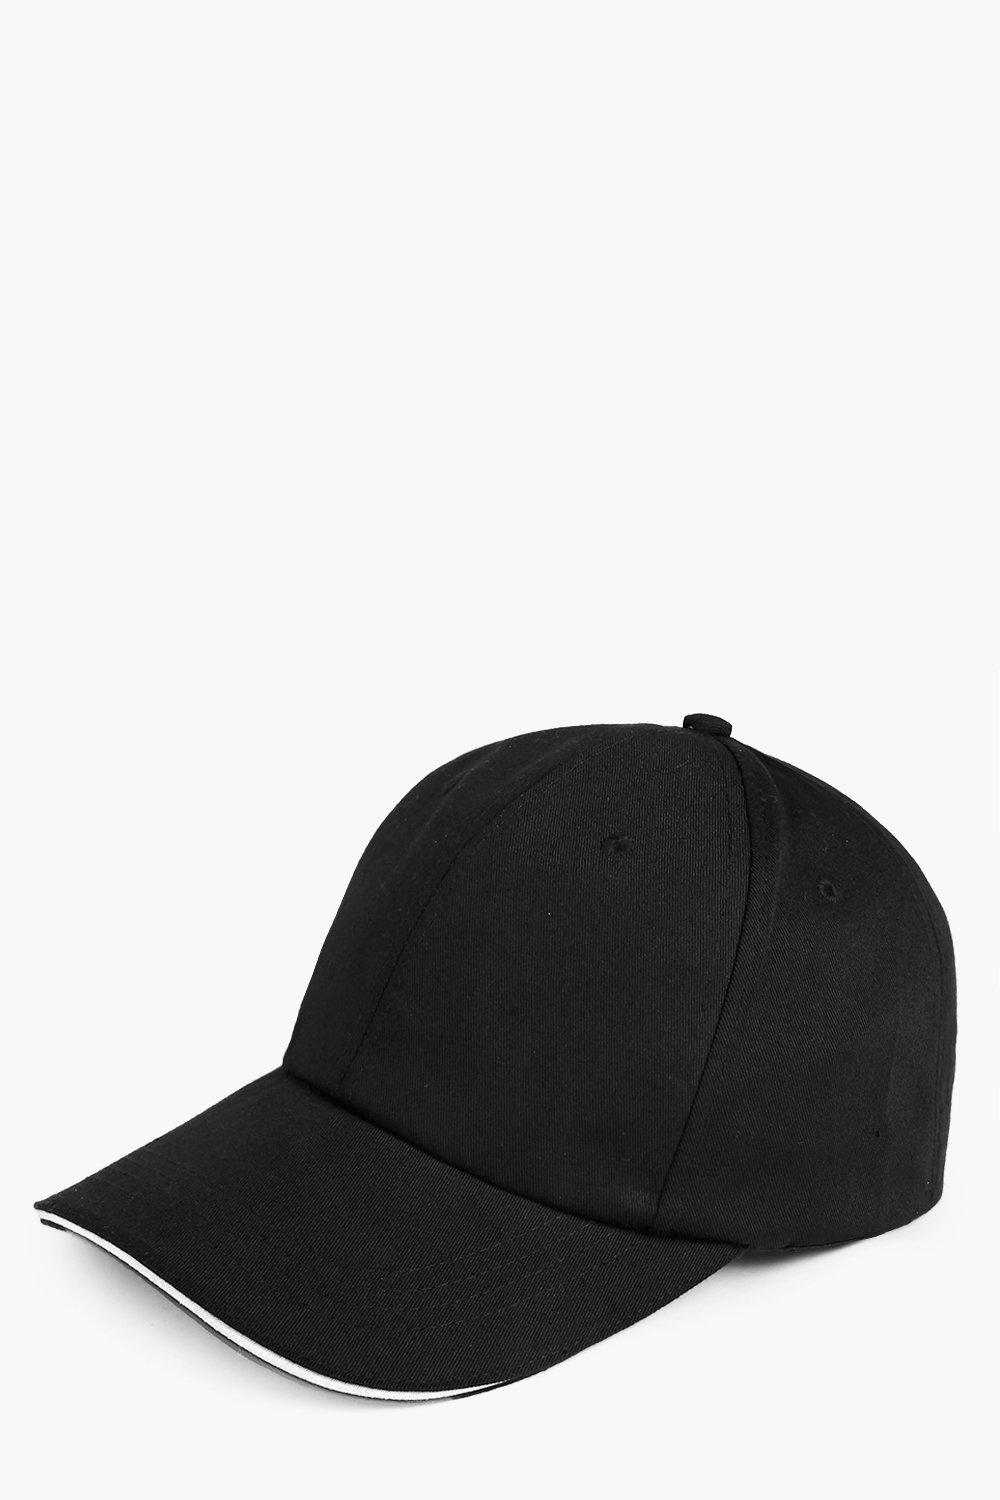 Plain Cap - black - Stay snug in scarves and hats